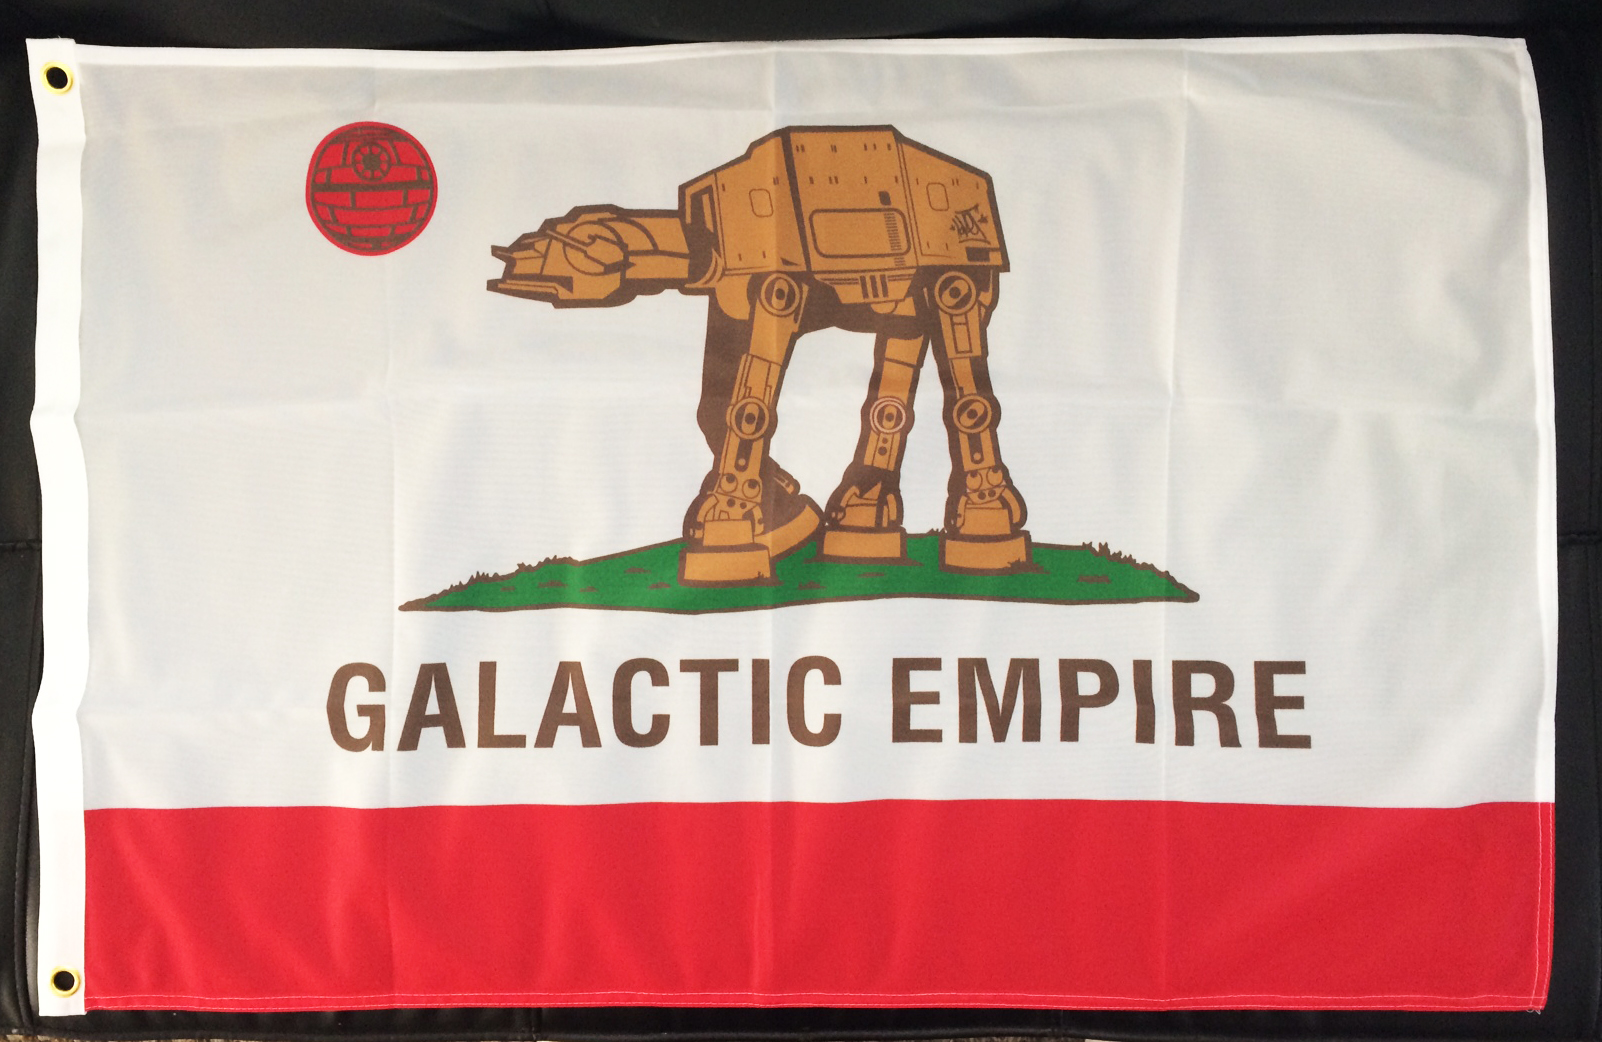 6ft X 4ft Galactic Empire Flag California Colorway